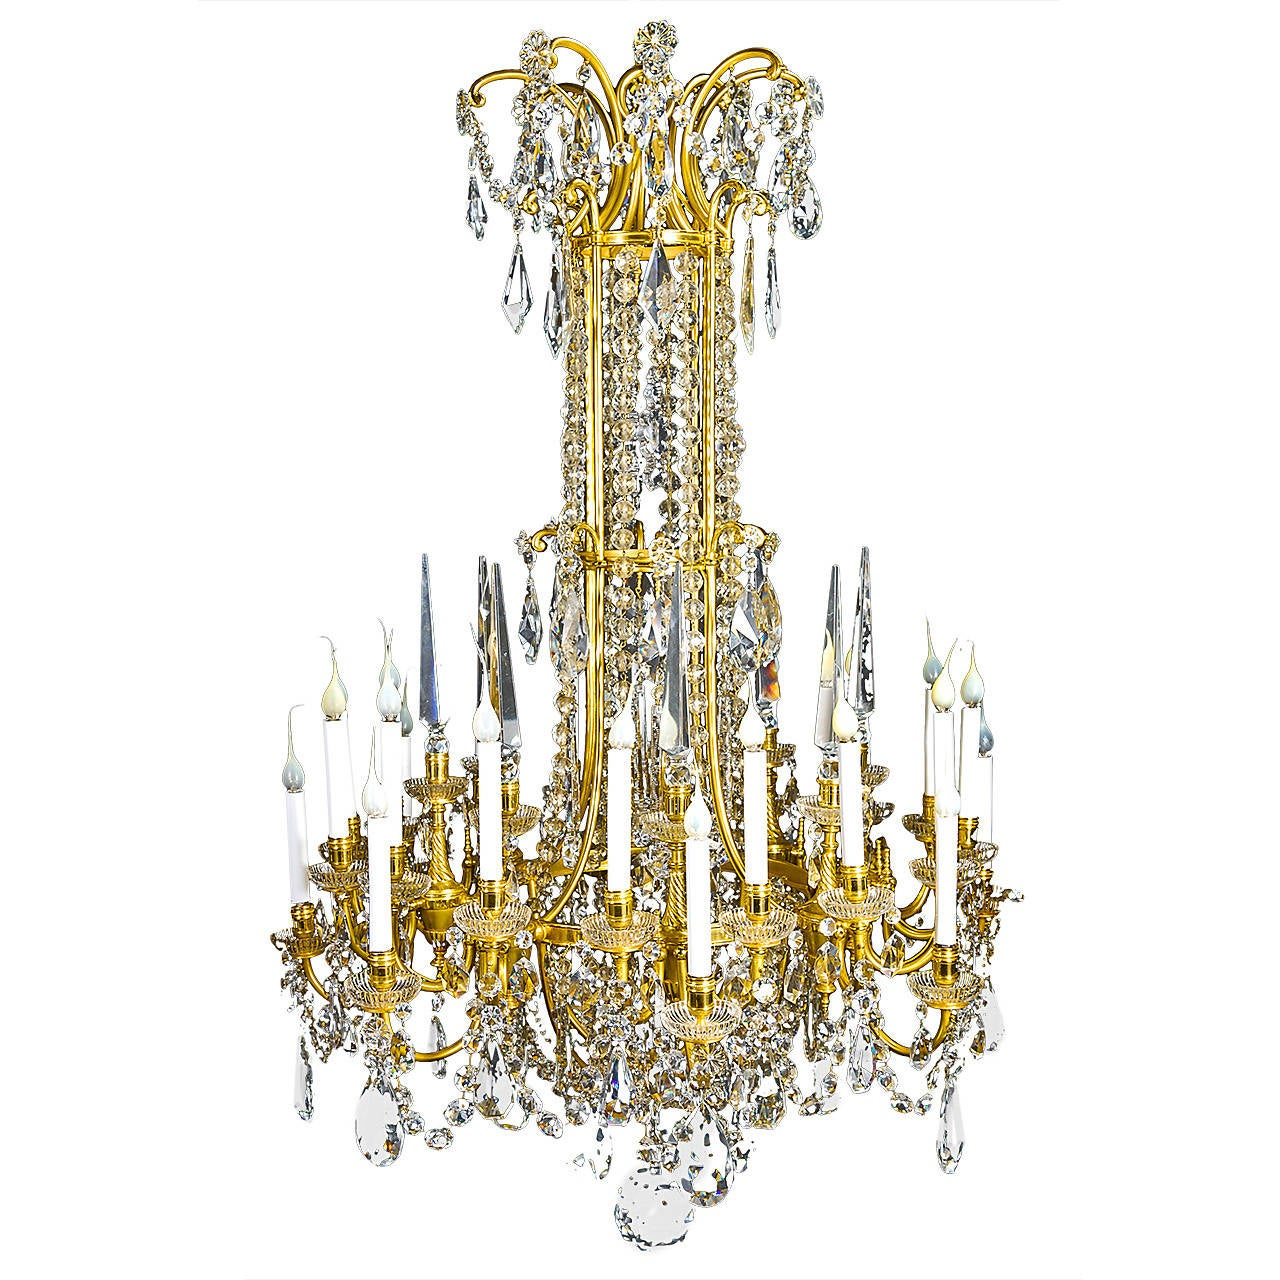 Large Antique French Louis XVI Style Gilt Bronze and Crystal Baccarat Chandelier